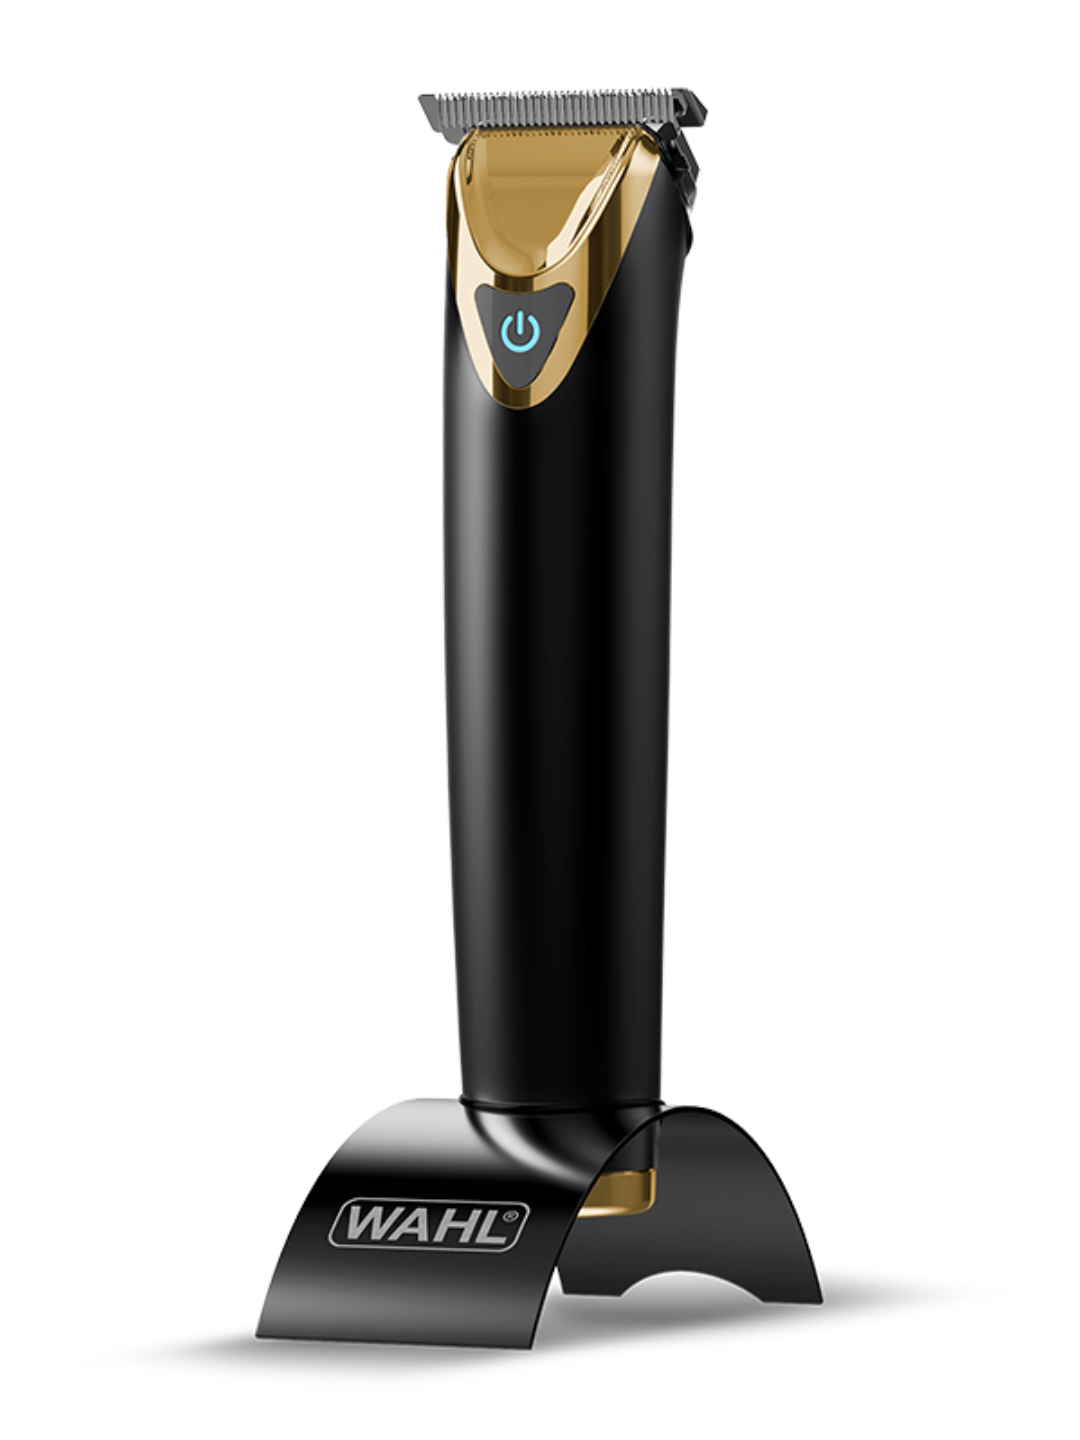 WAHL | Wahl Stainless Steel - Black and Gold